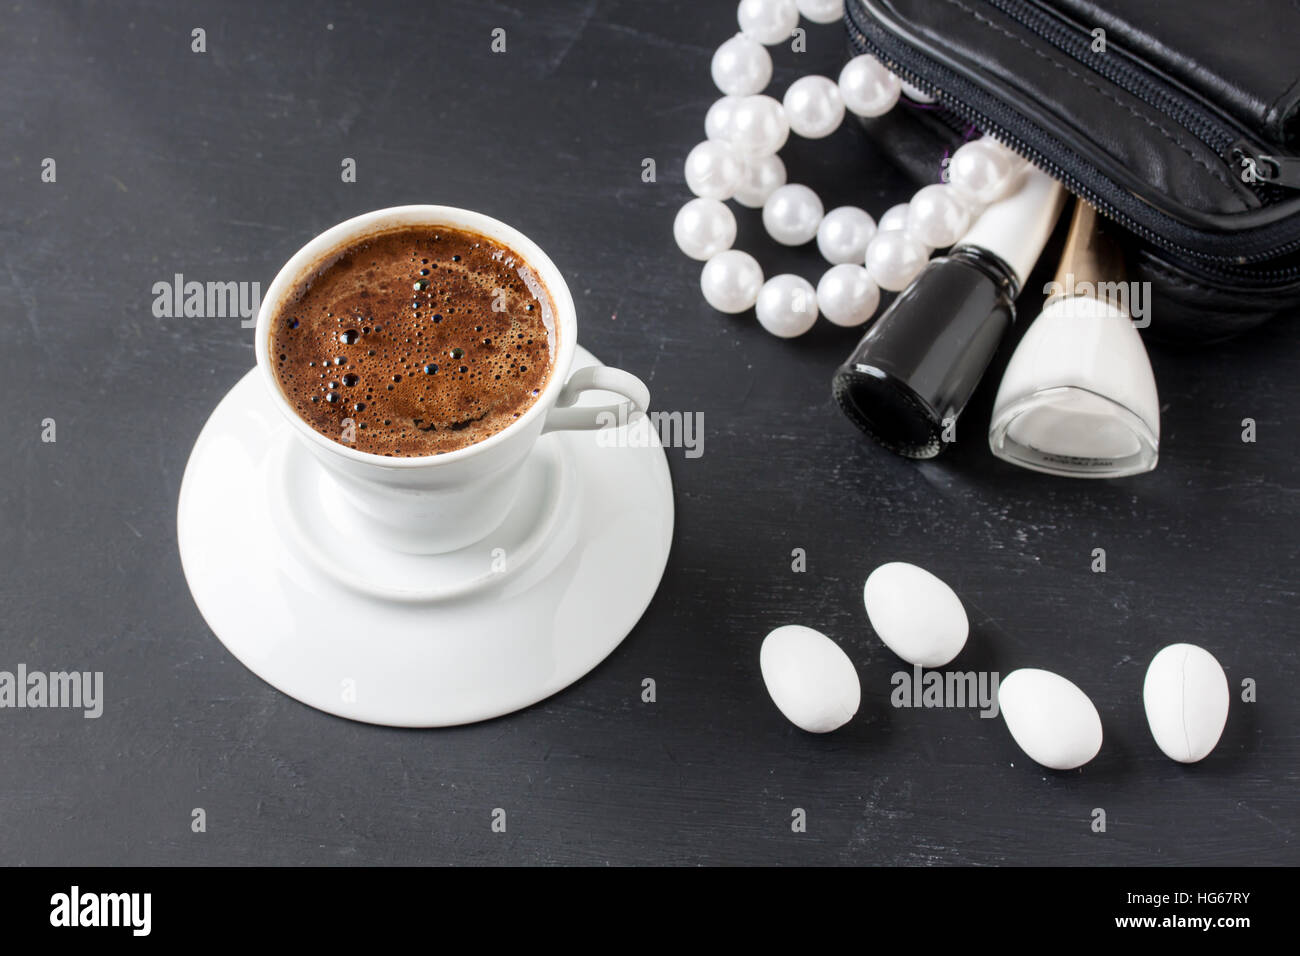 Turkish coffee with masculine style - Stock Image